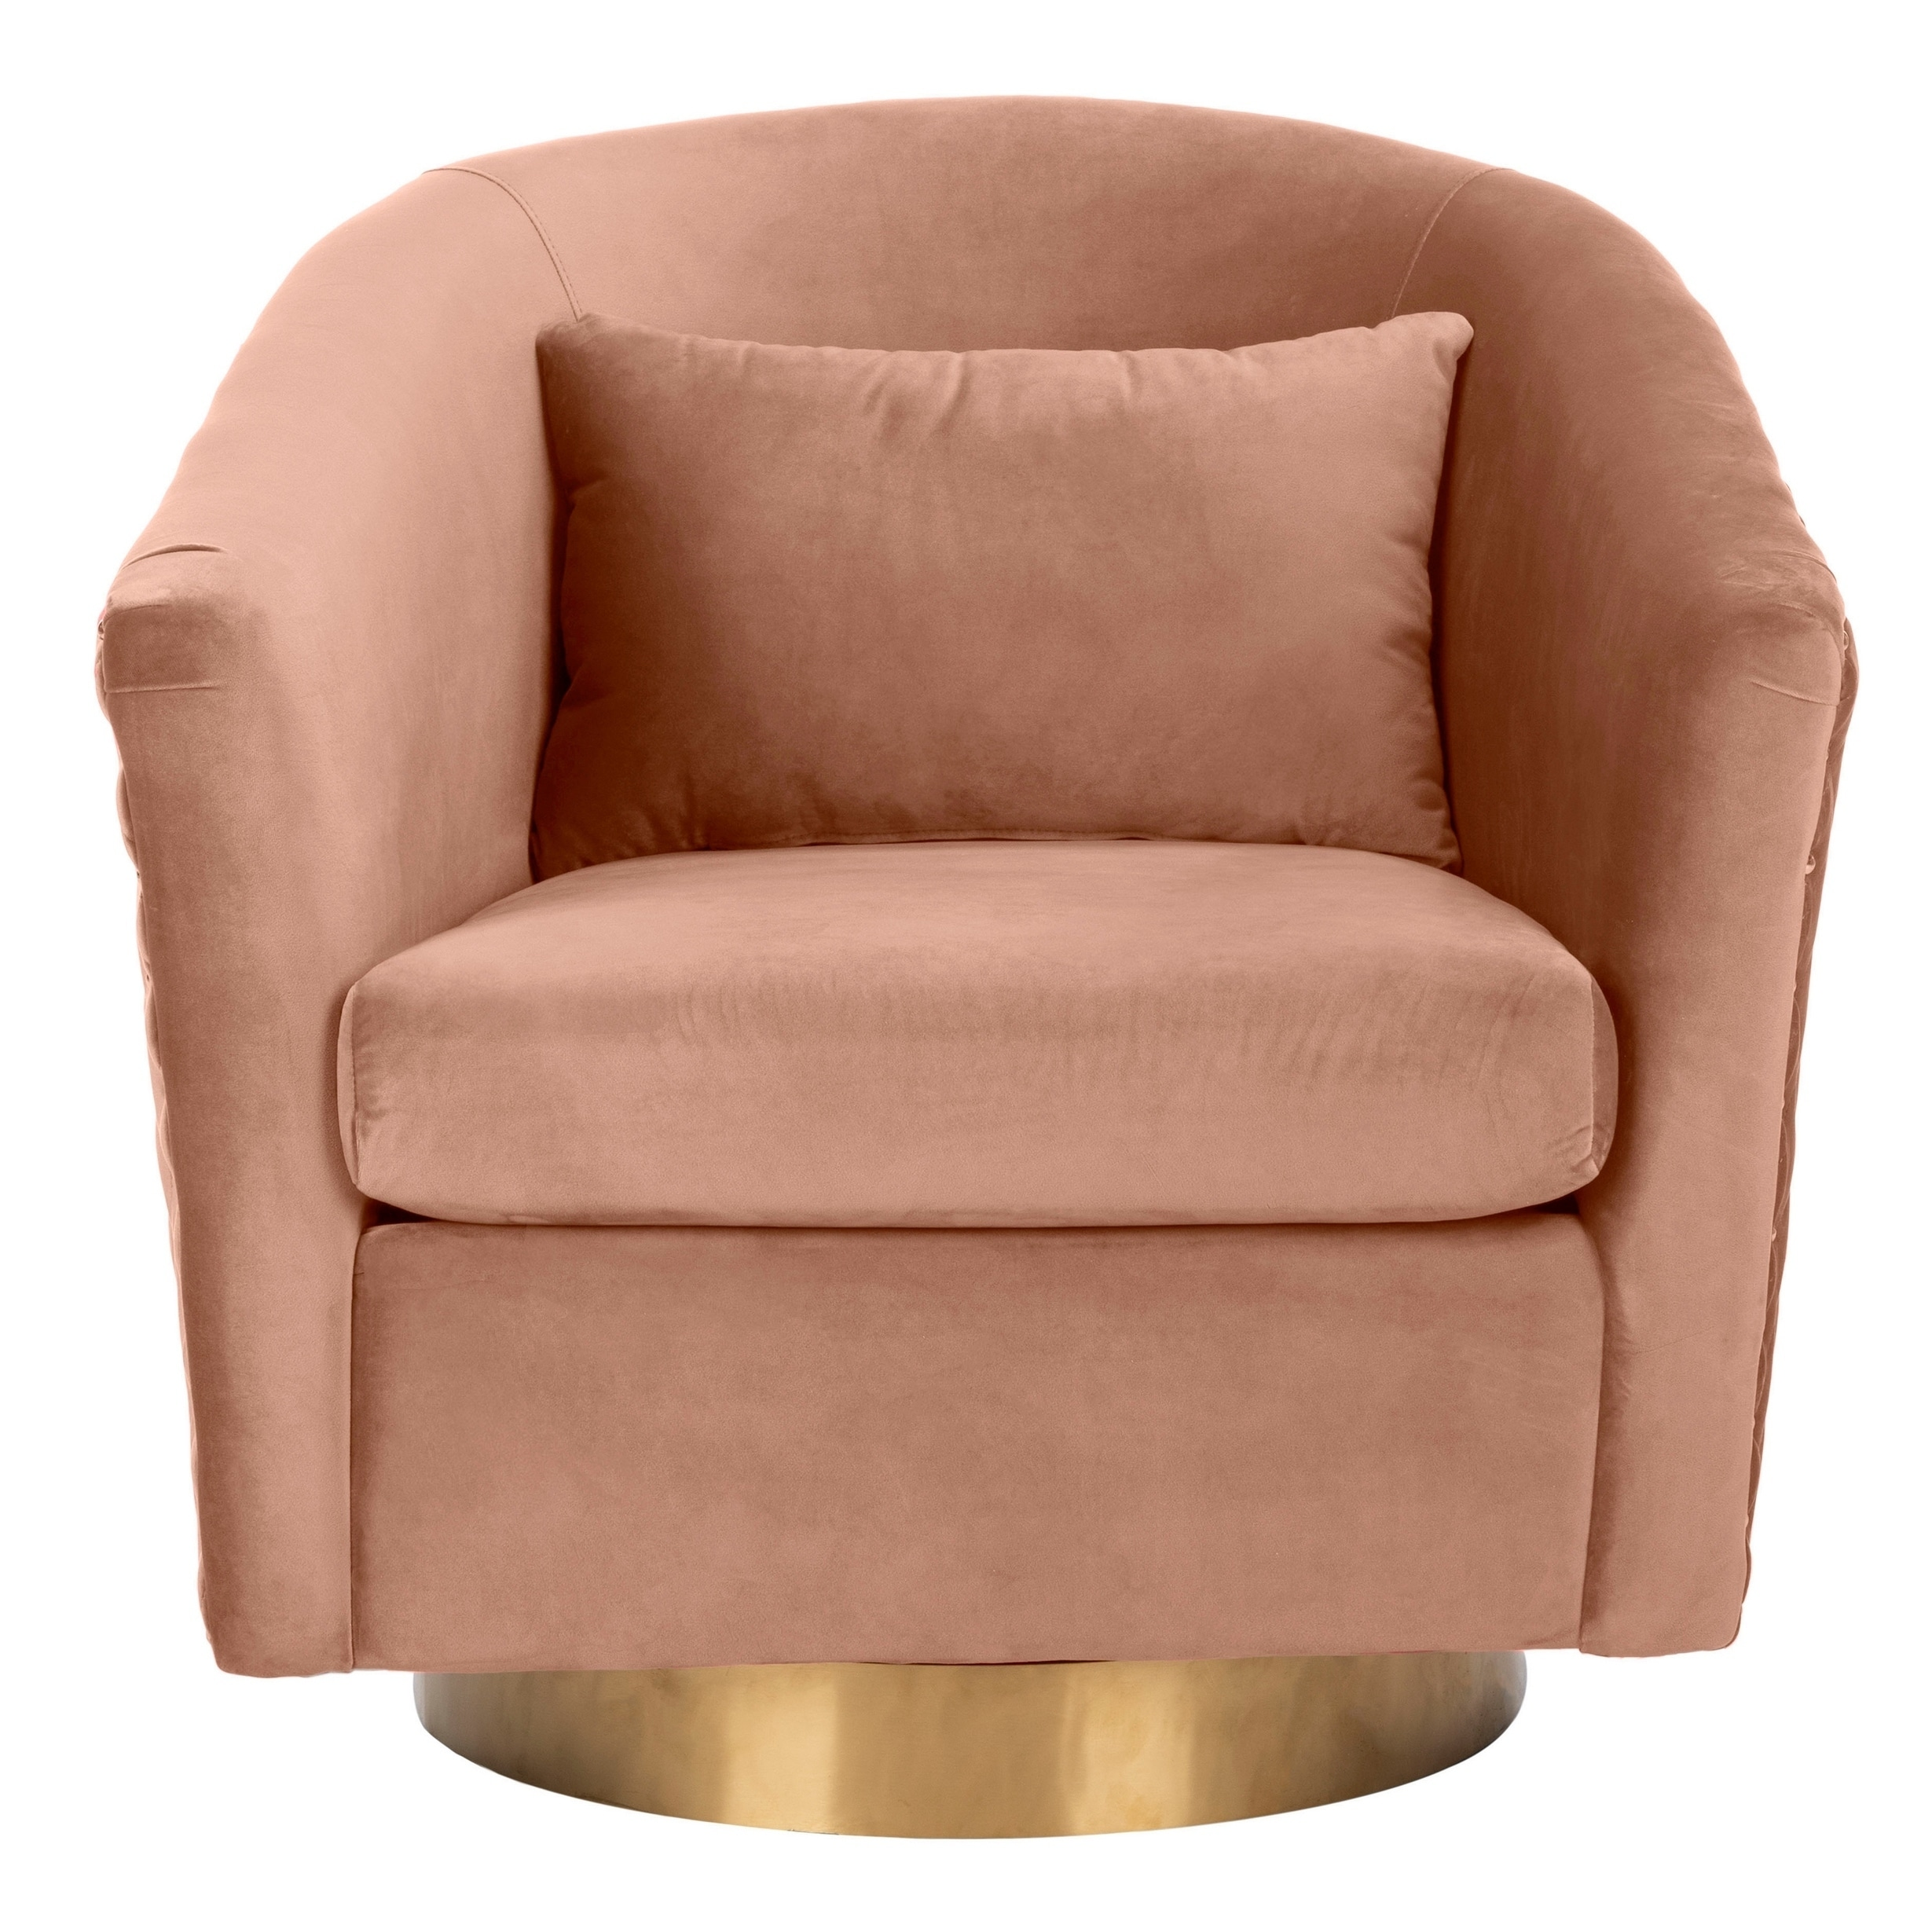 Shop Safavieh Couture Clara Quilted Swivel Tub Chair- Dusty Rose ...